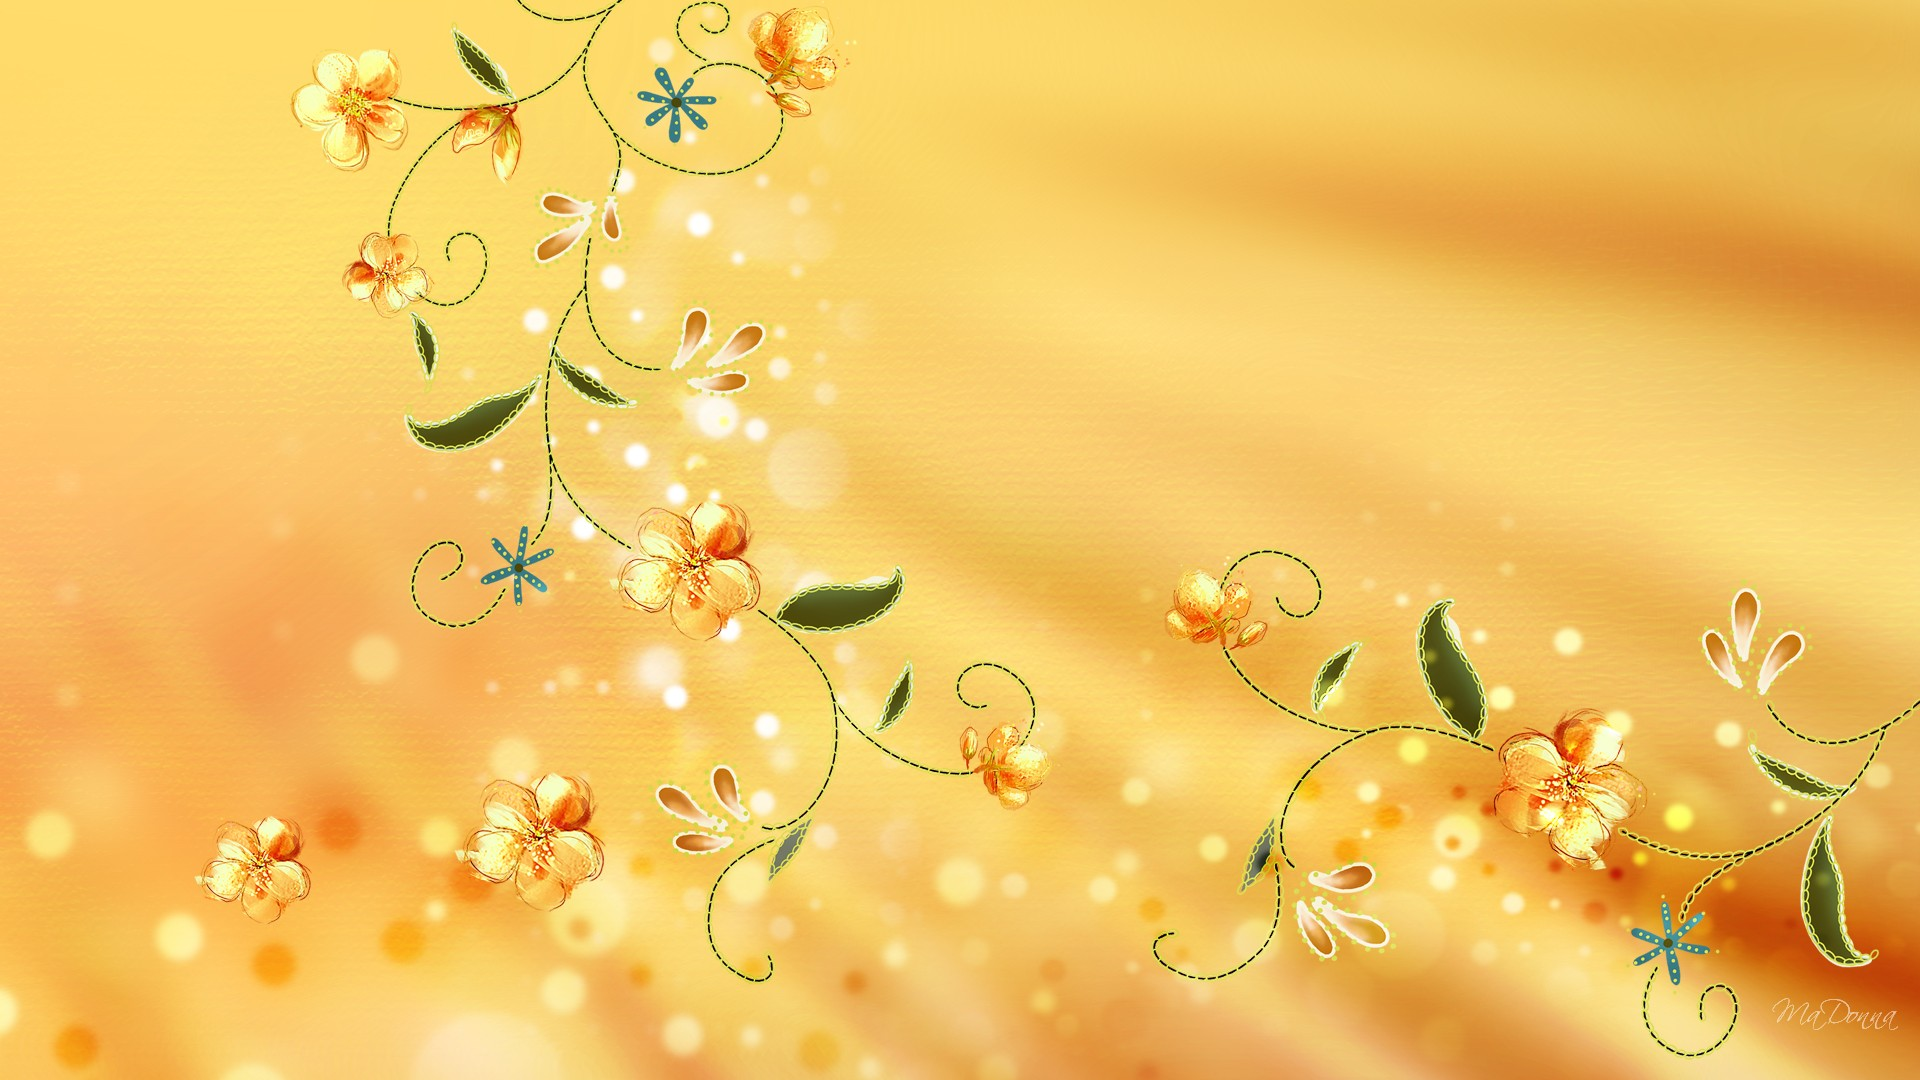 17 Gold Colored Backgrounds amp Wallpapers WeNeedFun 1920x1080